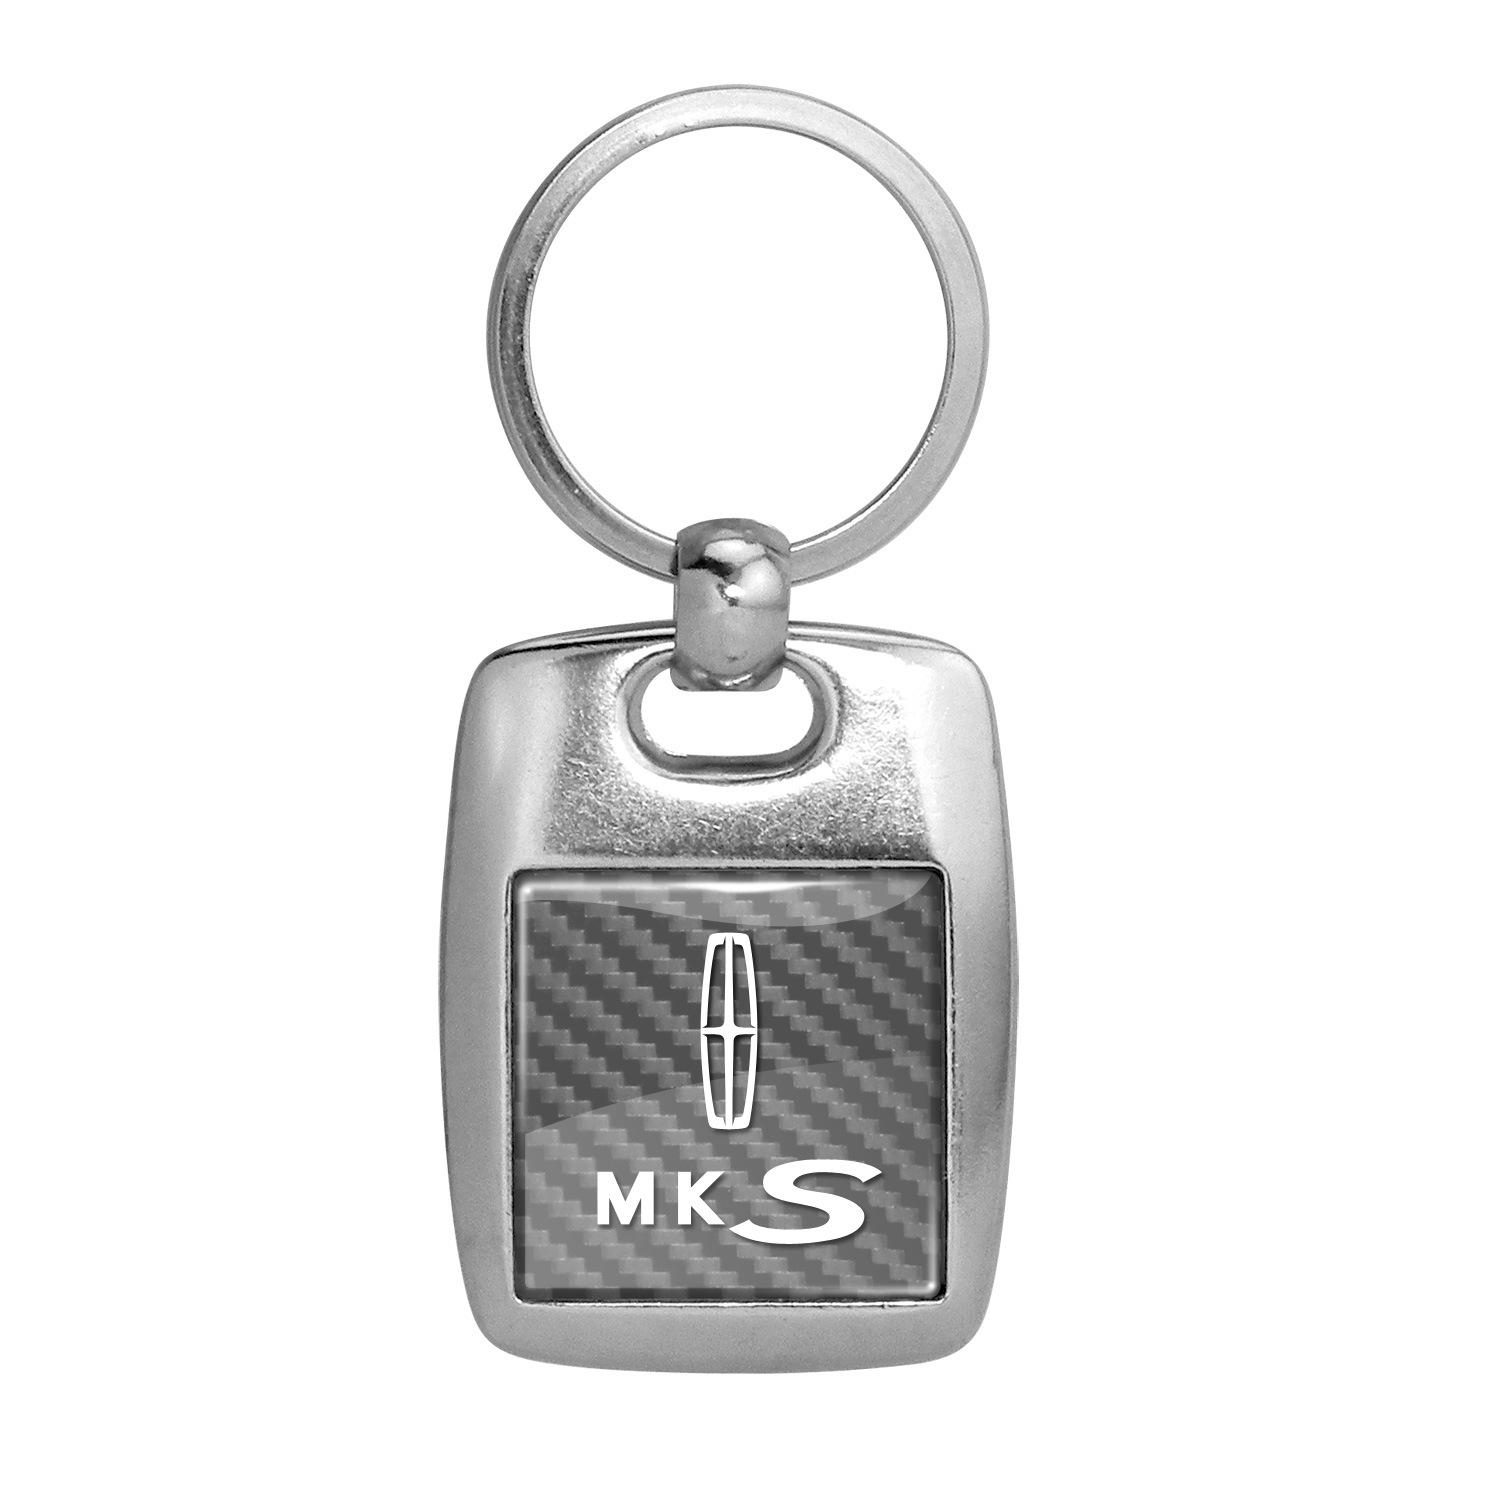 Lincoln MKS Silver Carbon Fiber Backing Brush Metal Key Chain